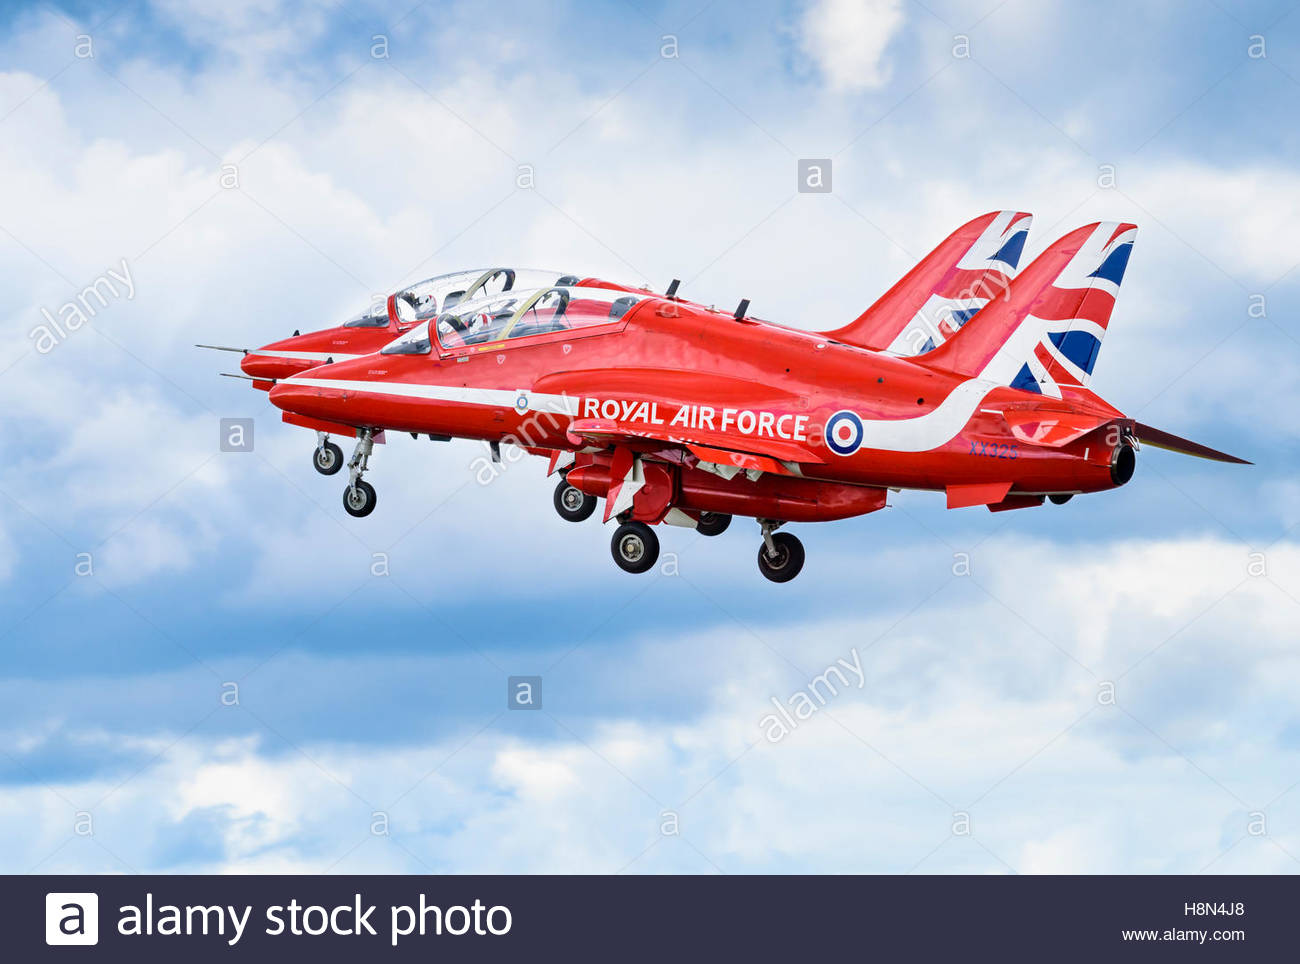 Two Of The Red Arrows Bae Systems Hawk T1 Aircraft Taking Off In